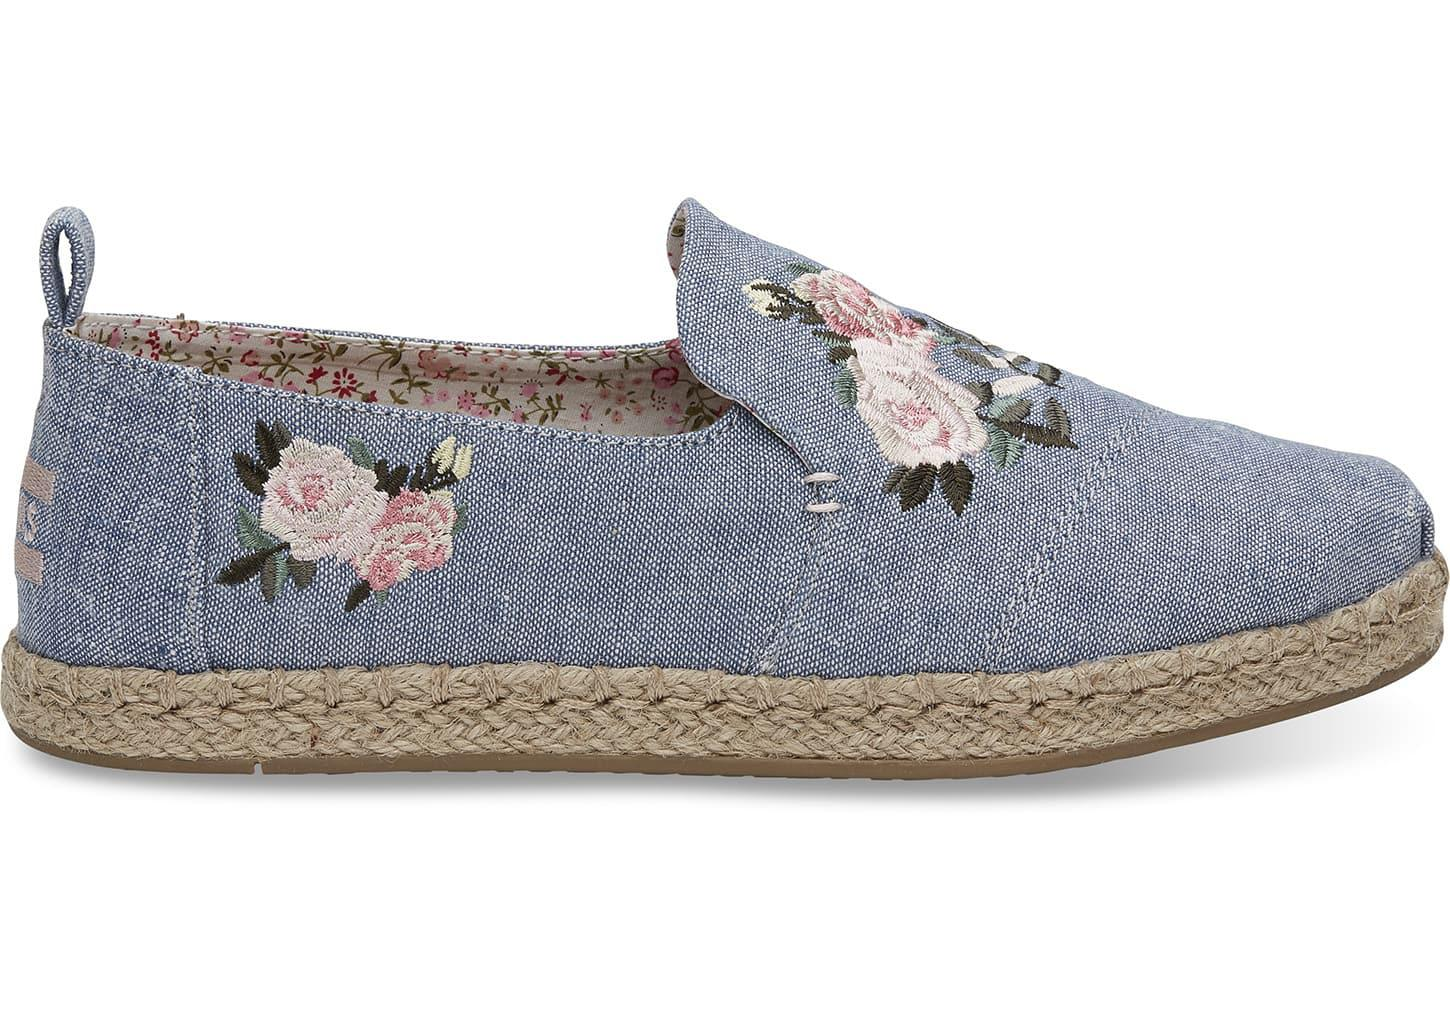 fd418b2f08a Toms Floral Embroidered Chambray Women s Deconstructed Alpargatas ...